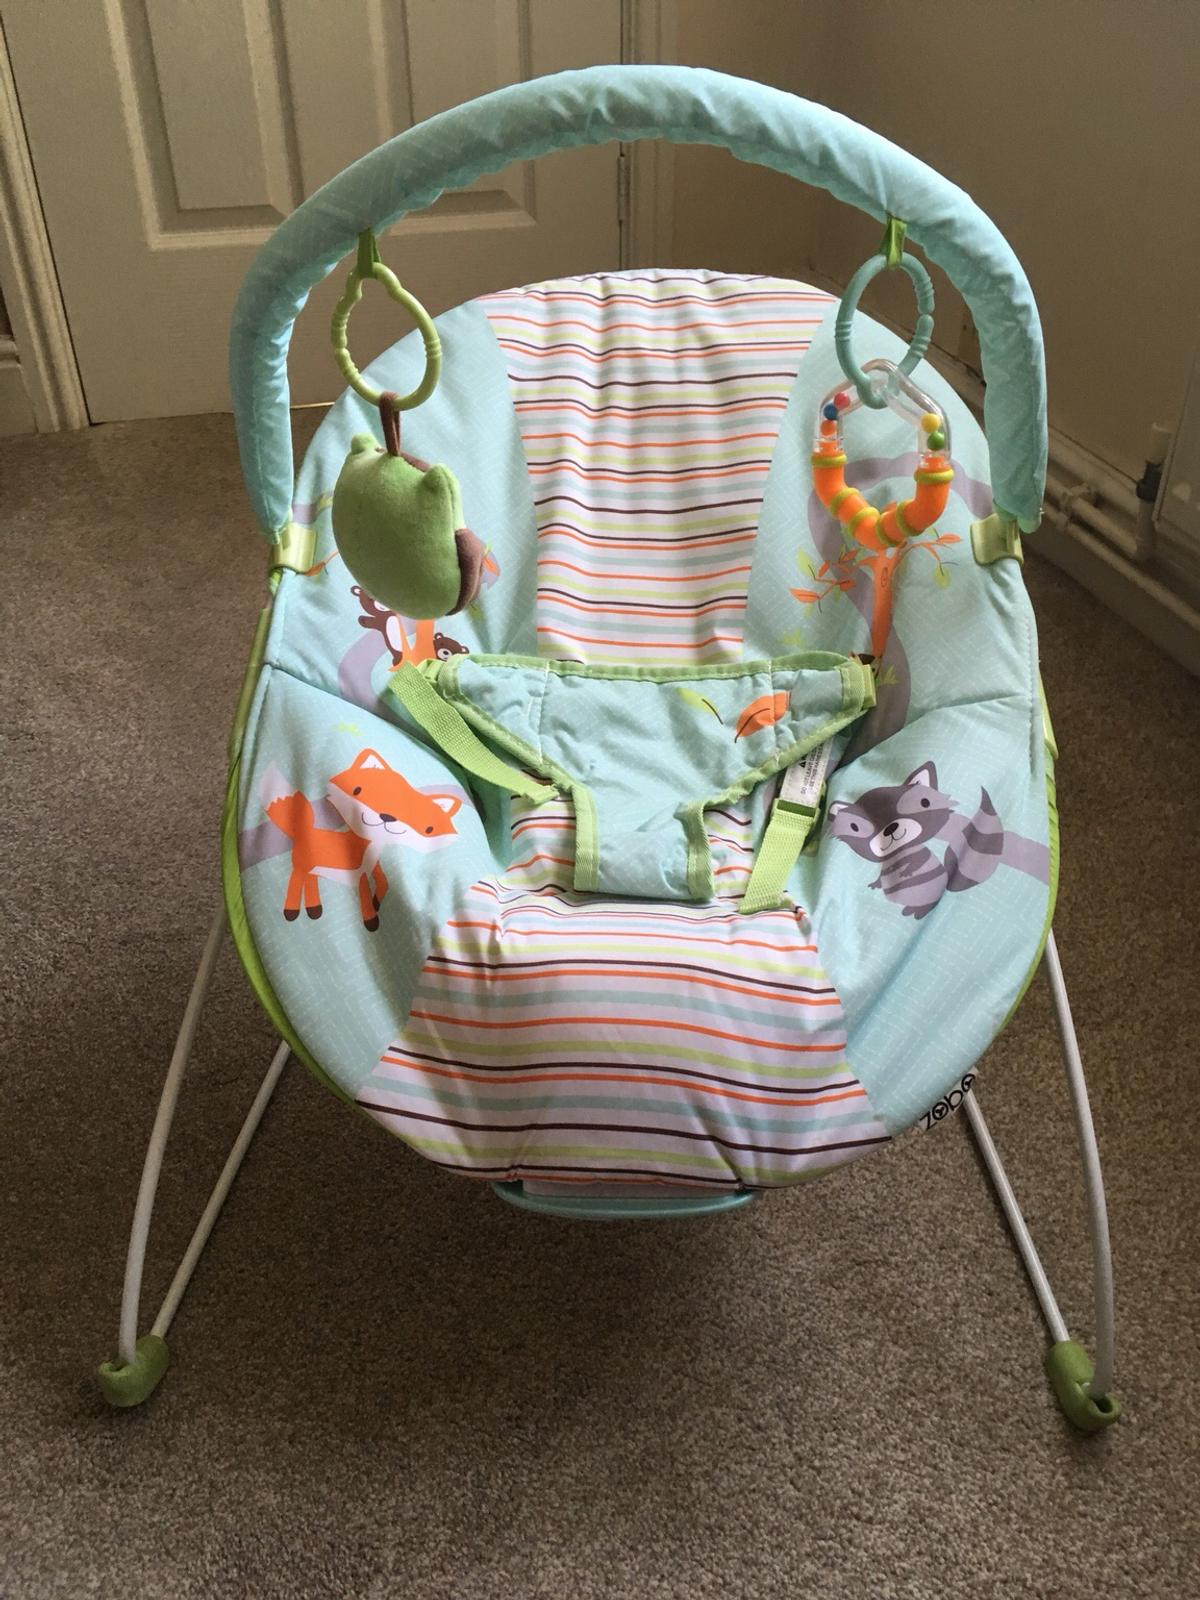 e908d17fa Zobo Woodland Friends Baby Bouncer in B69 Sandwell for £3.00 for ...